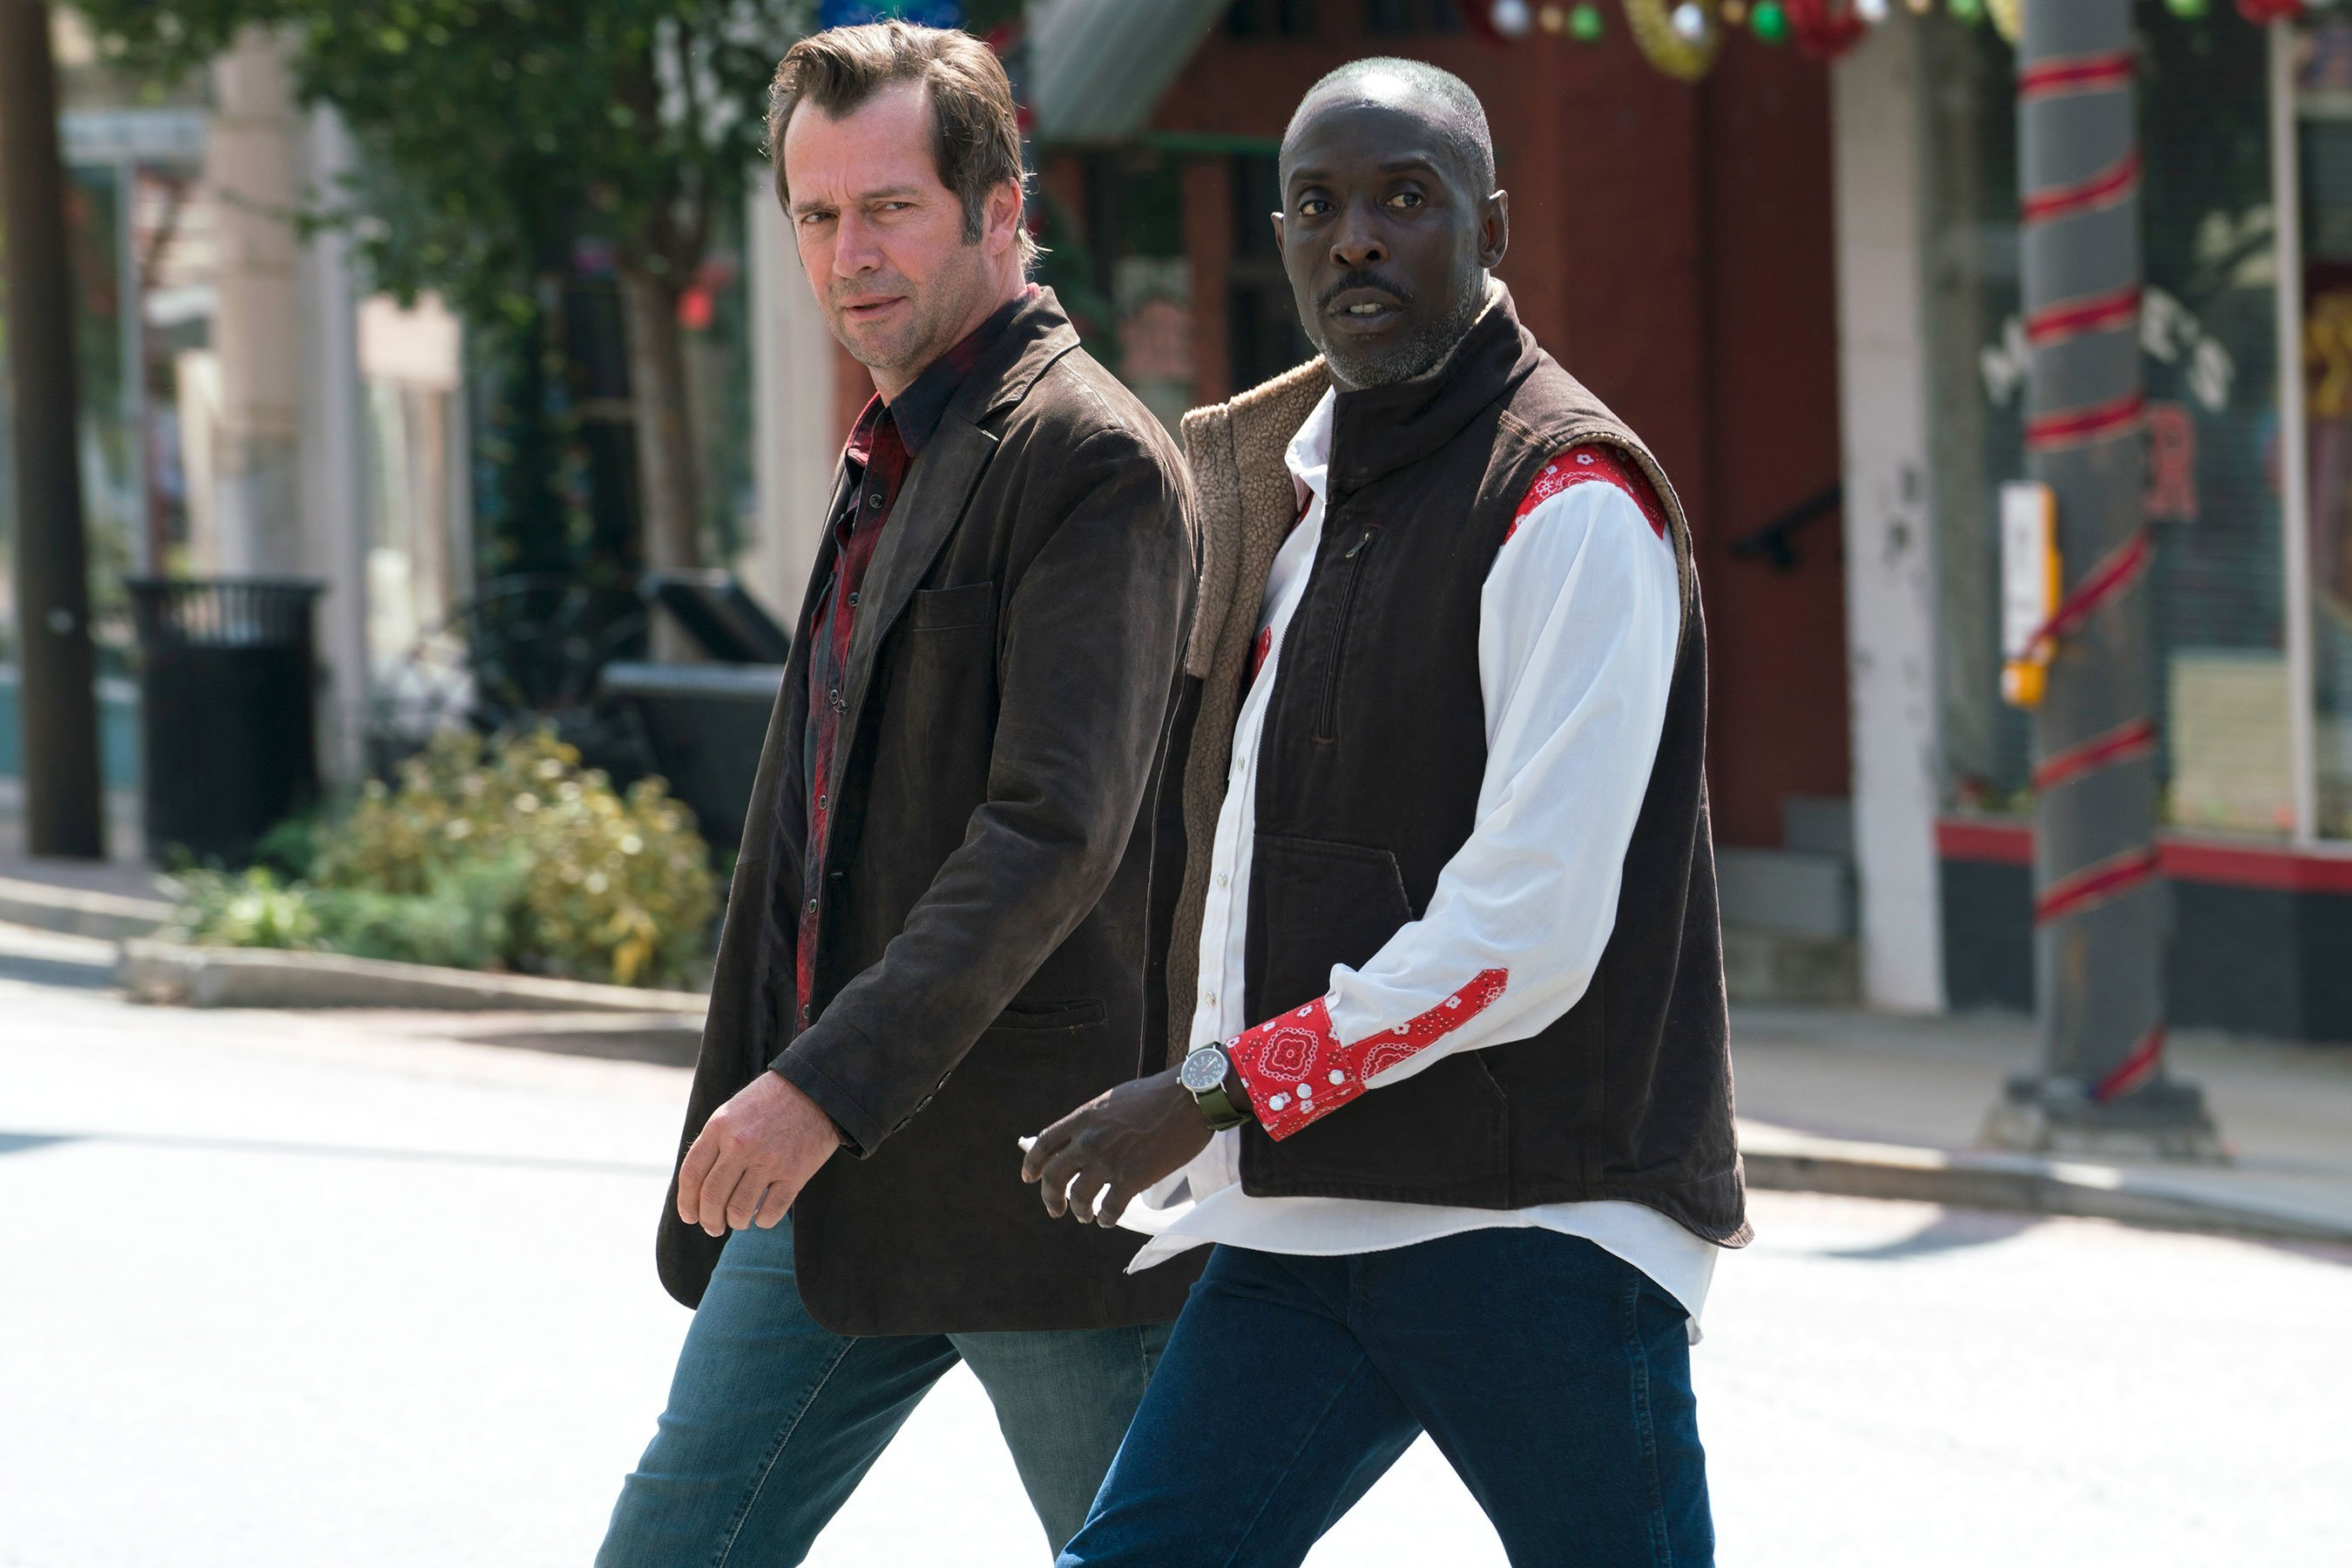 Michael Kenneth Williams burns down house in Hap and Leonard clip